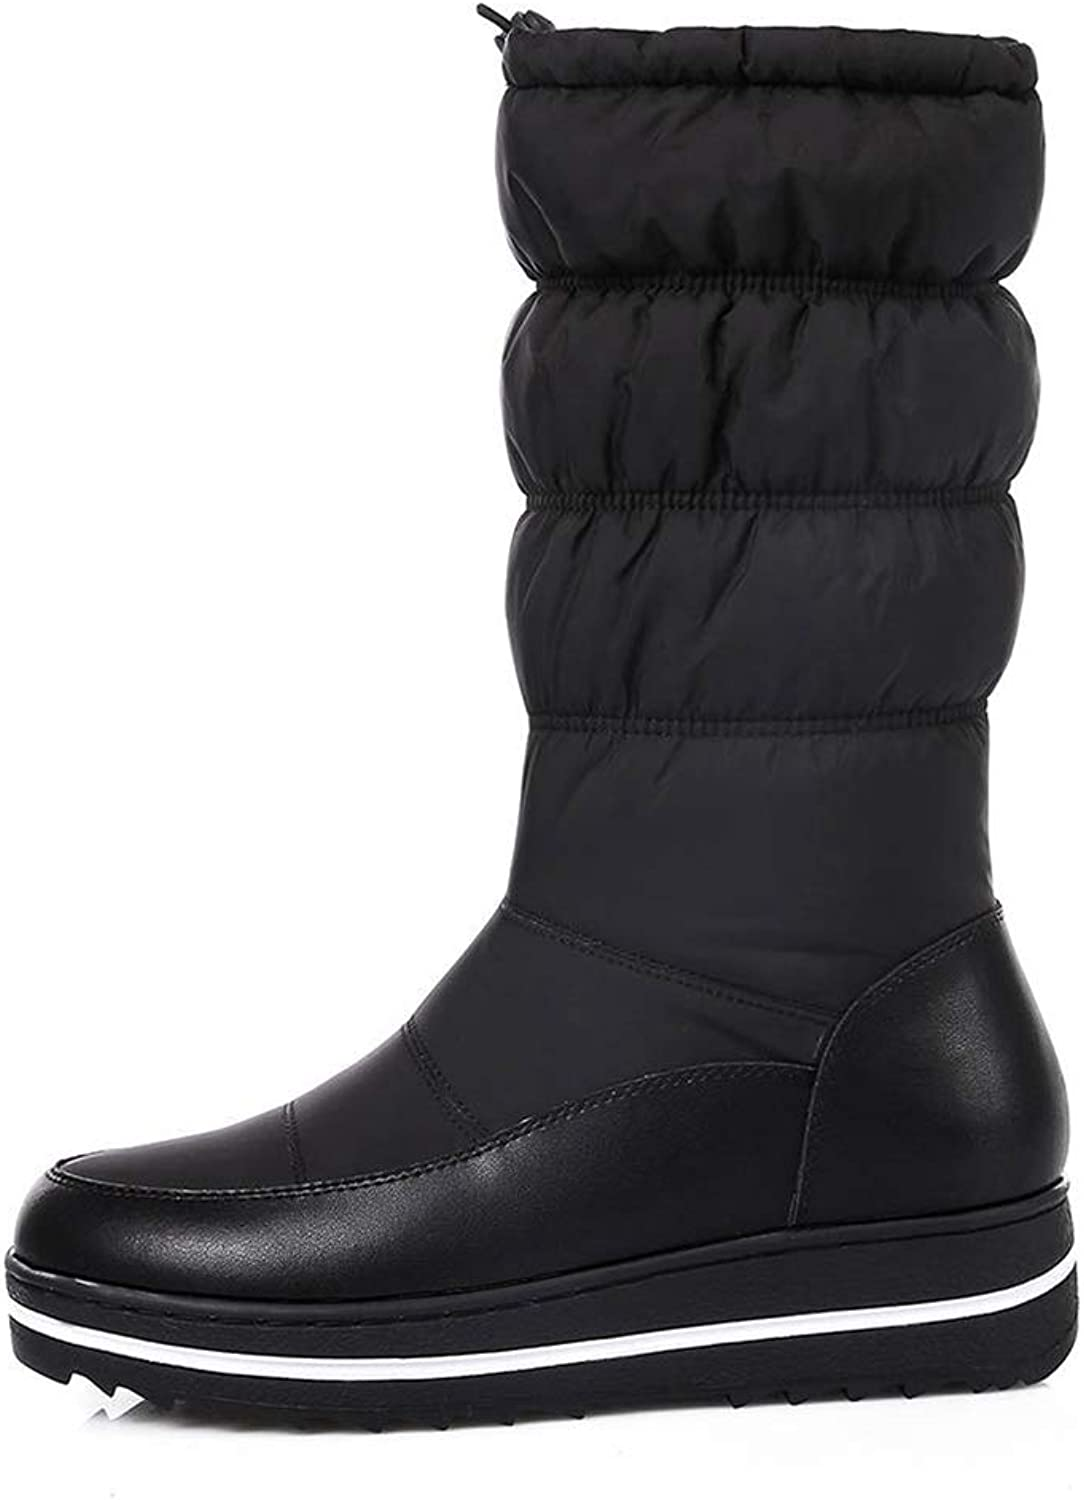 Jim Hugh Womens Mid Calf Boots Fashion Height Increasing Platform Slip-On Cow Leather Winter shoes